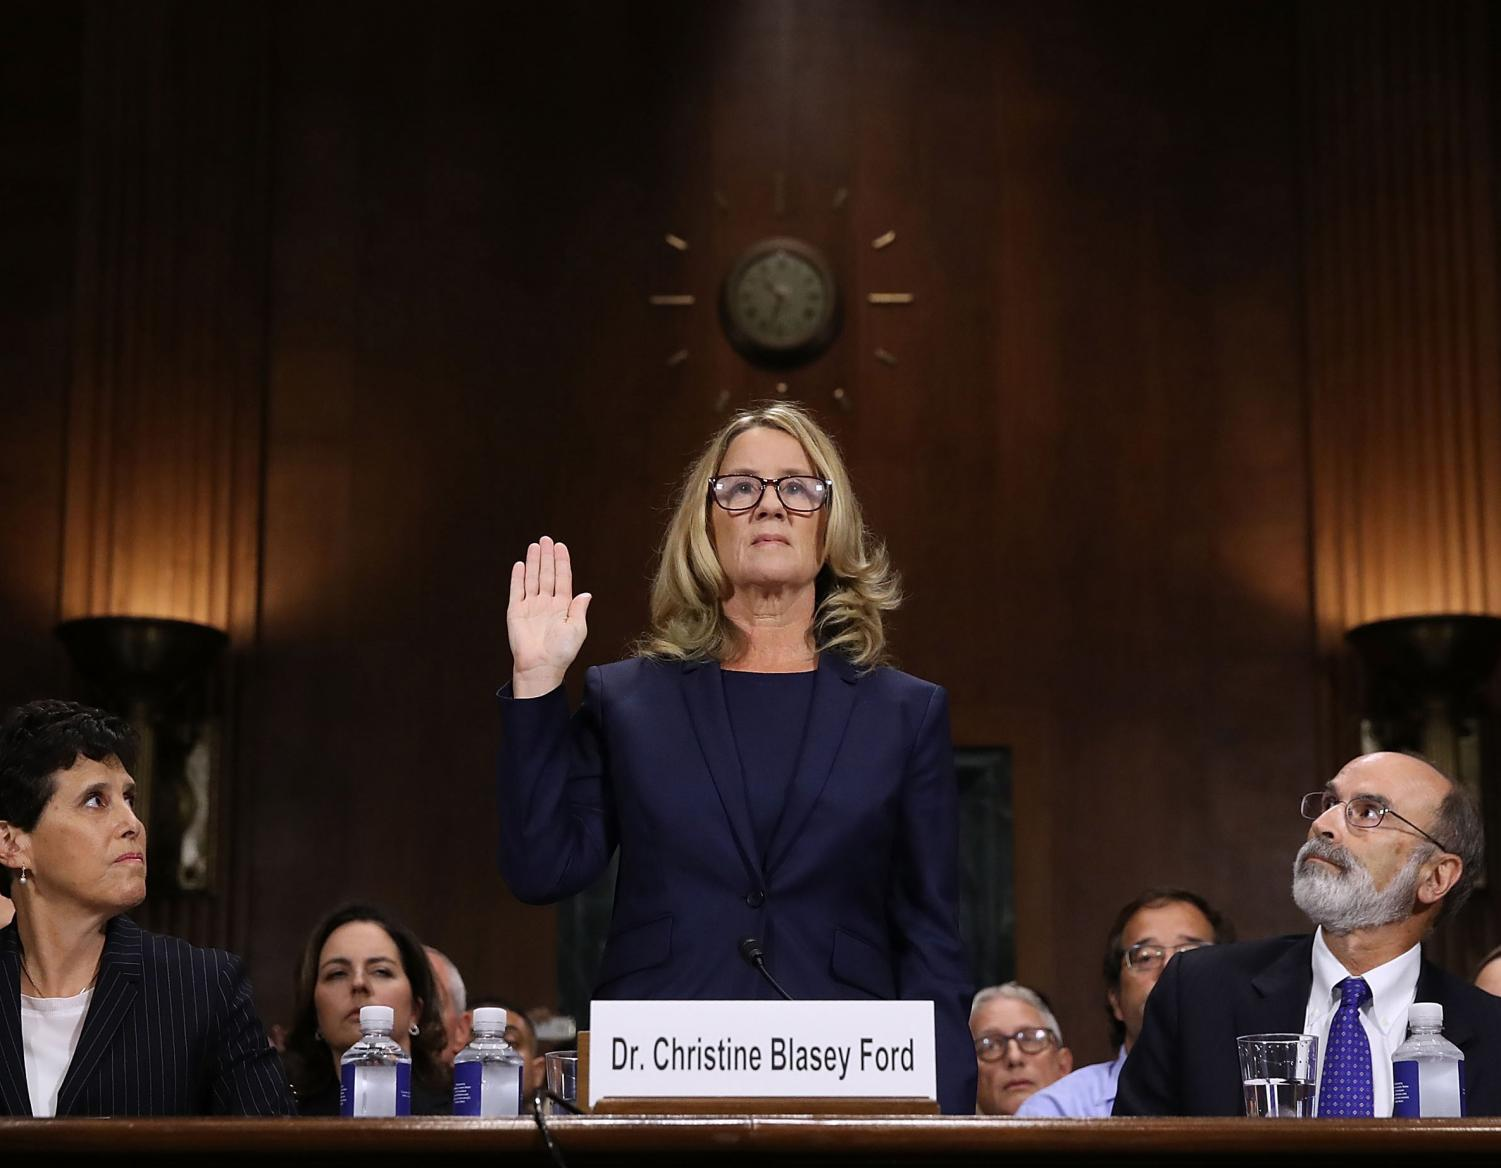 Opinion columnist Jack Ave discusses the recent hearing of Christine Blasey Ford, who allegated that SCOTUS nominee Brett Kavanaugh sexually assaulted her in the summer of 1982.